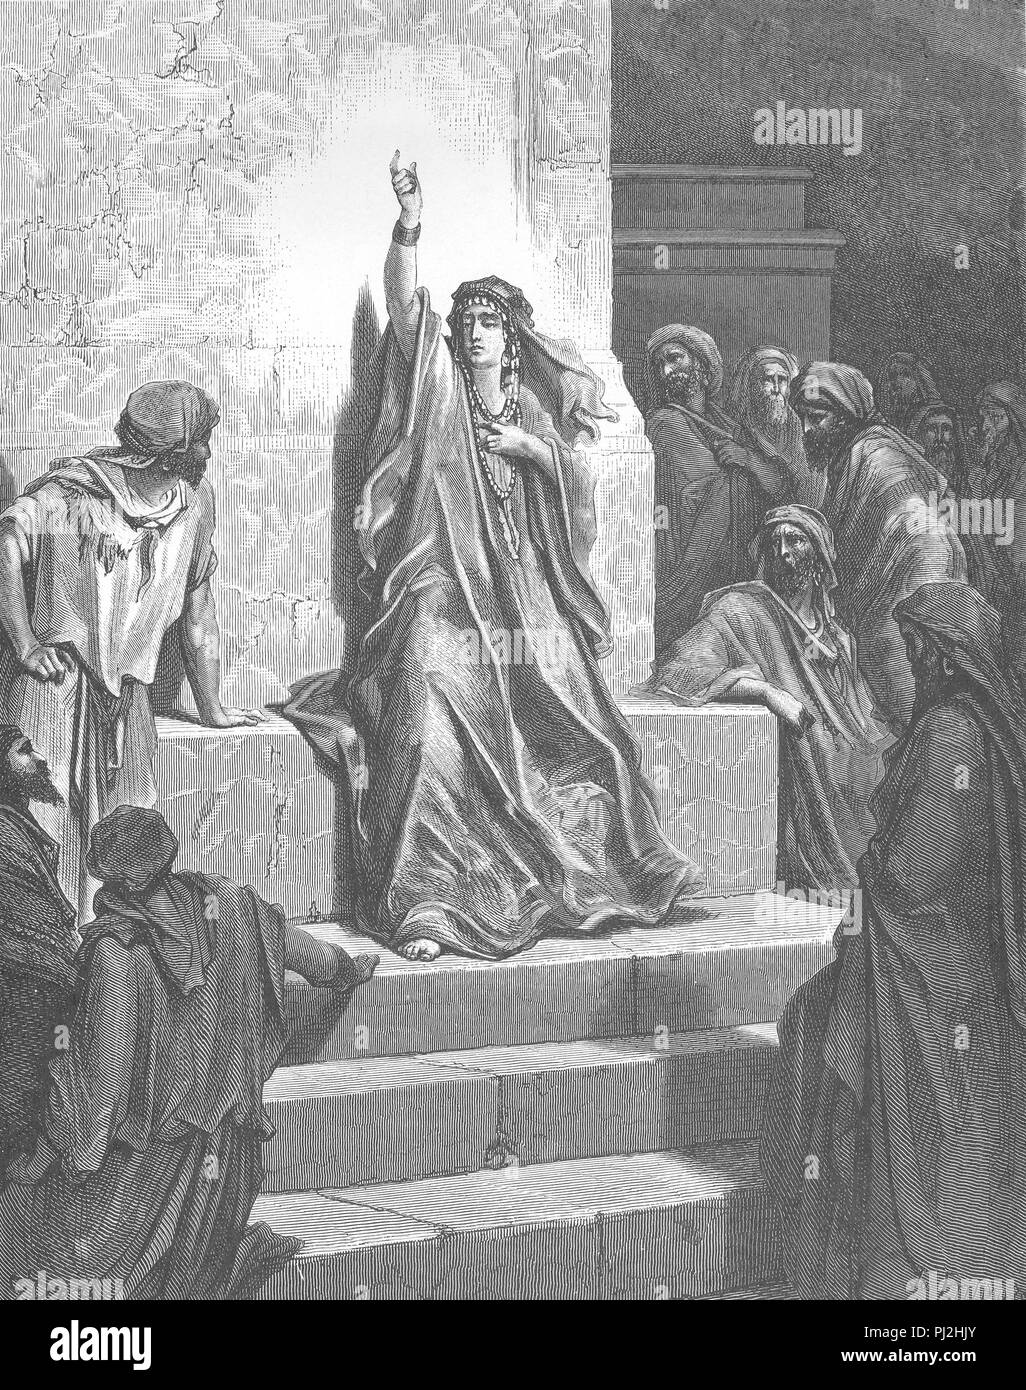 Deborah, Hebrew prophet, prophet of Yahweh the God of the Israelites, the fourth Judge of pre-monarchic Israel and the only female judge mentioned in the Bible, and the wife of Lapidoth. - Stock Image